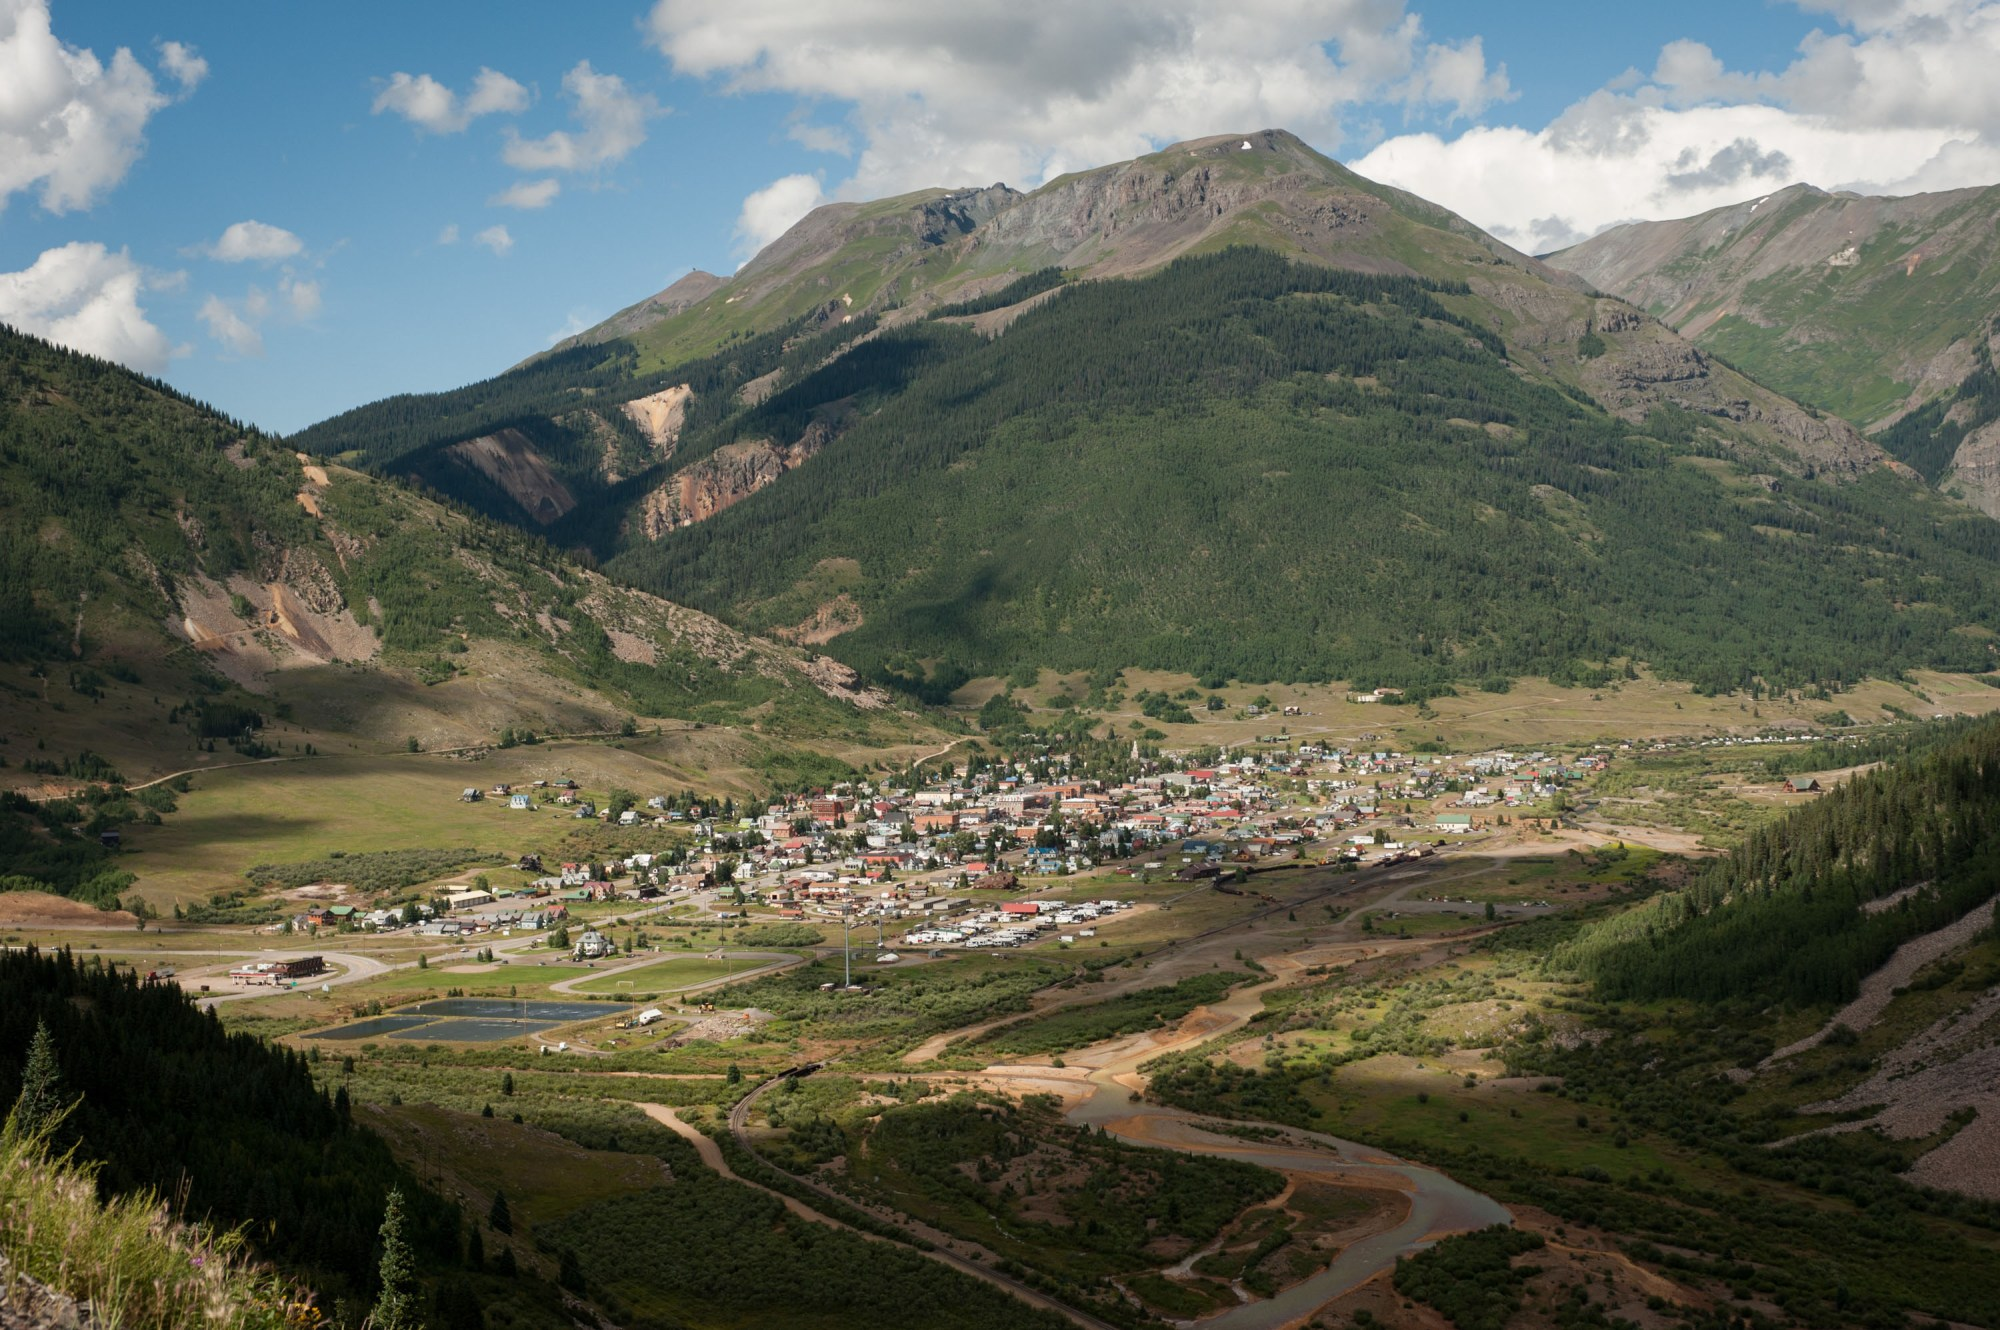 The town of Silverton is pictured on August 11, 2015 in Colorado. (Photo by Theo Stroomer/Getty Images)